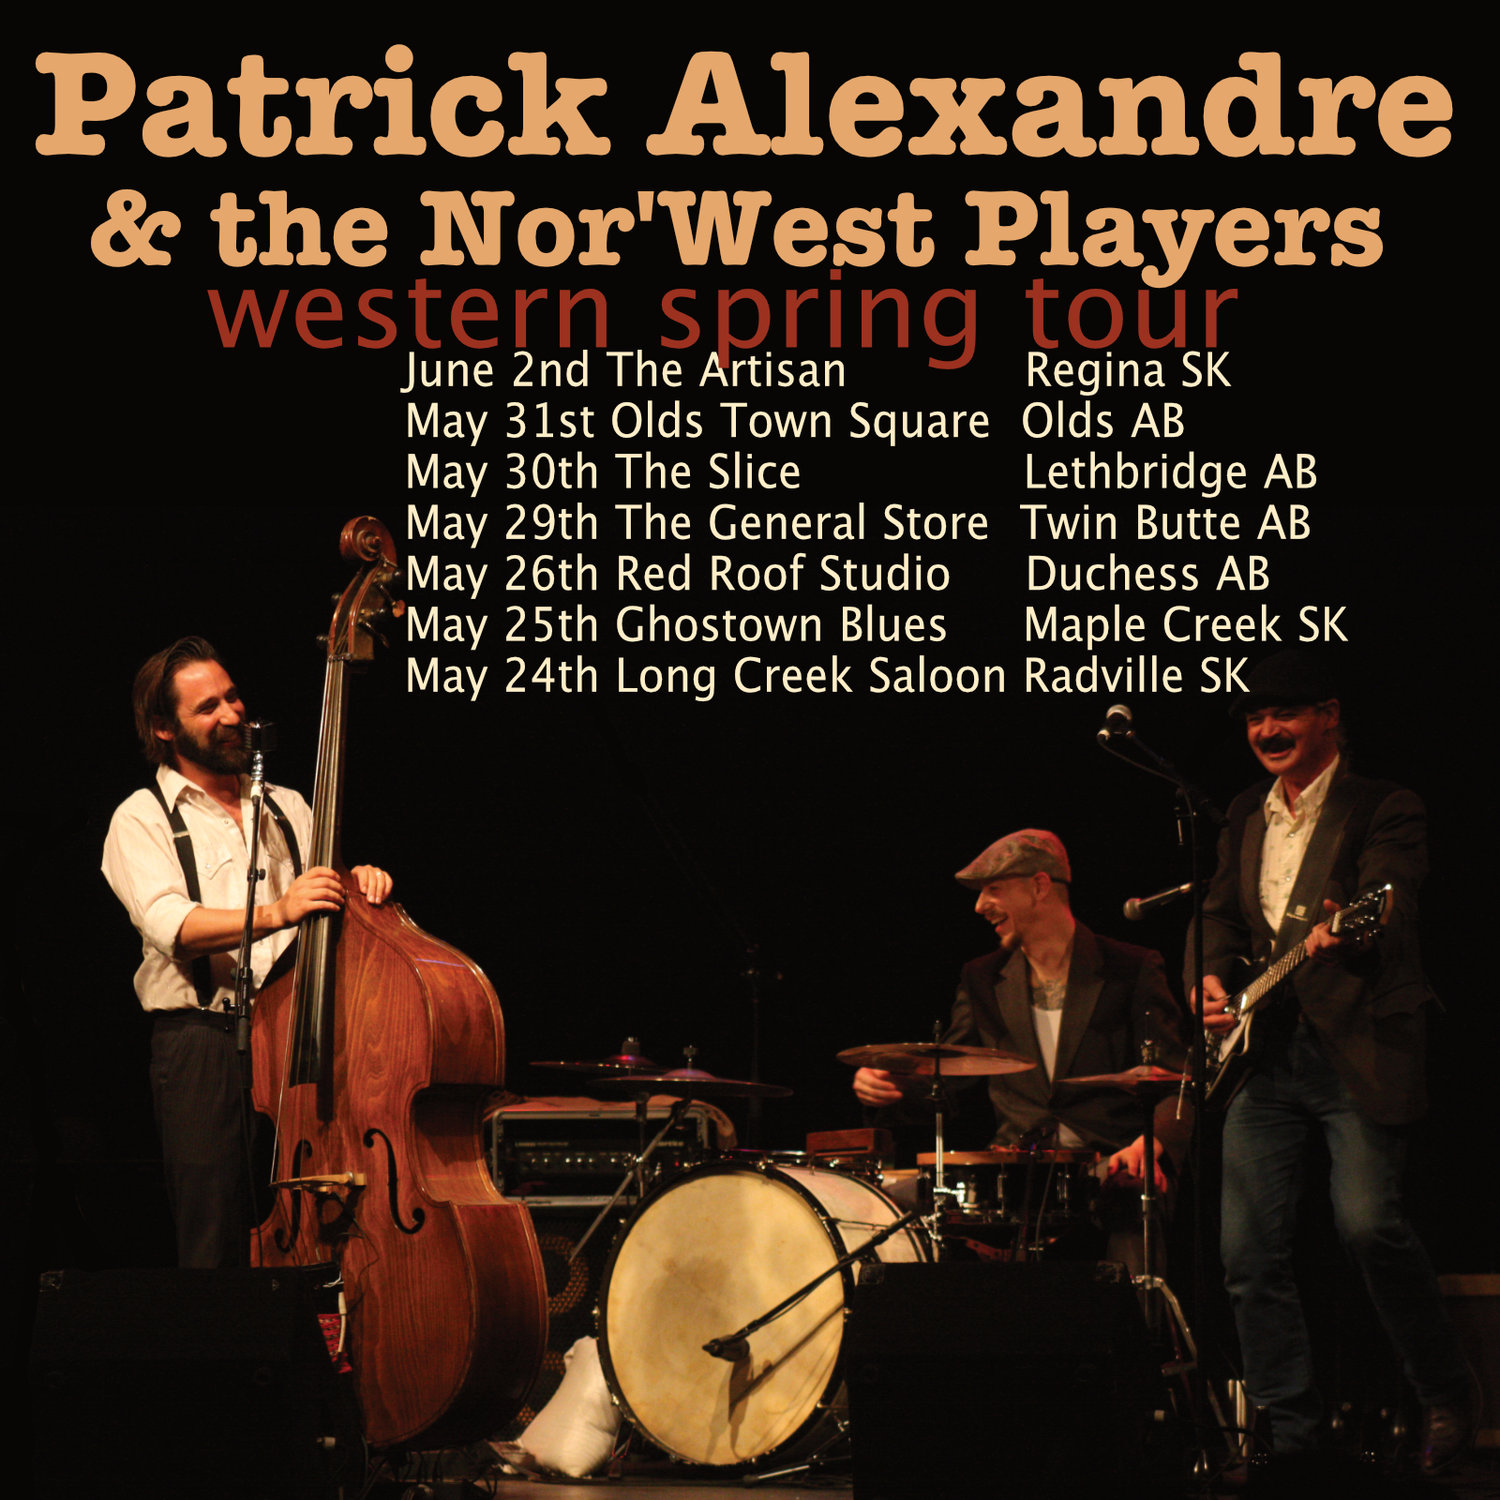 Patrick Alexandre & the Nor'west Players